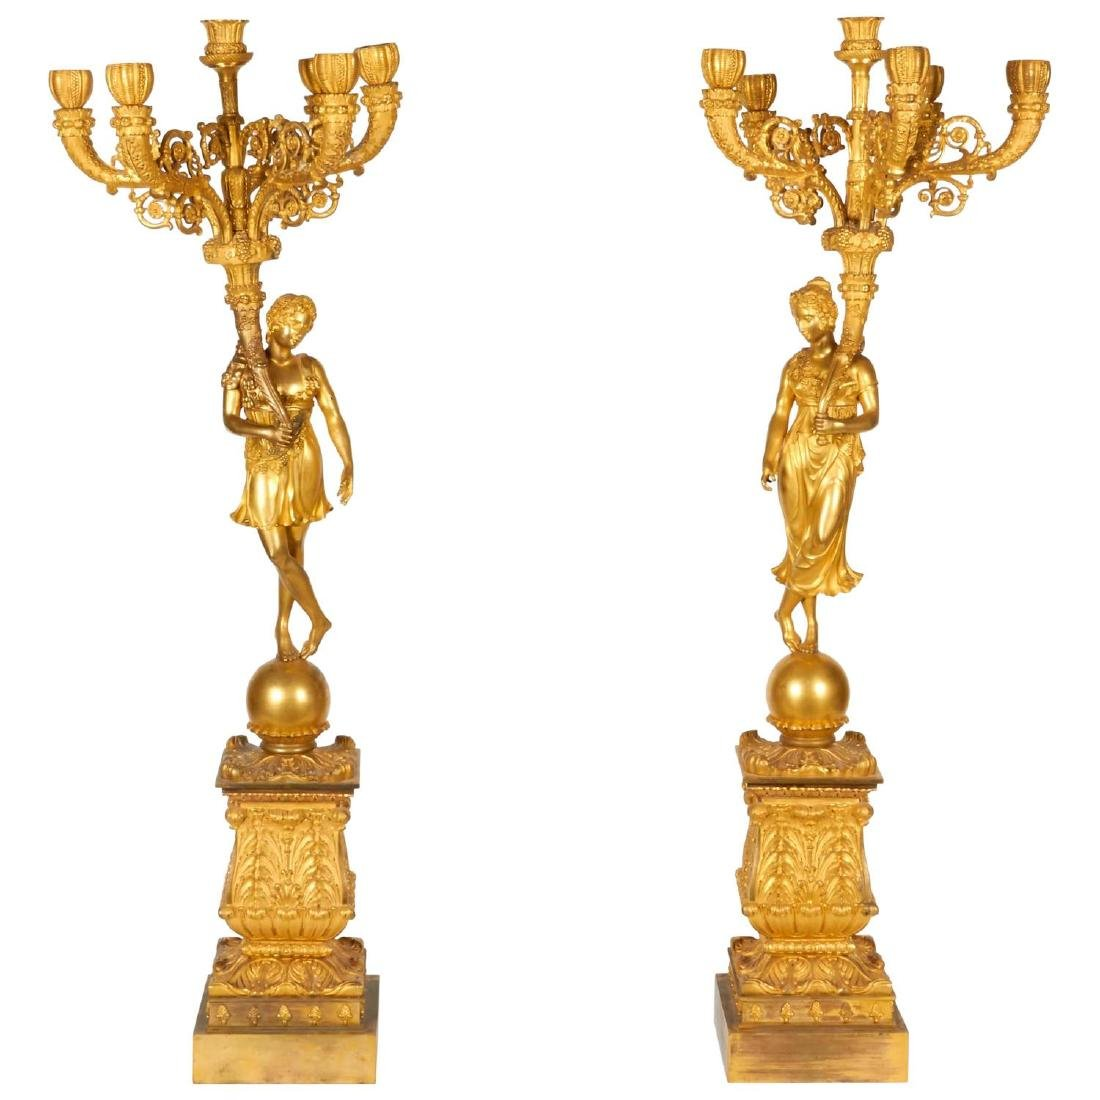 Monumental French Empire Ormolu Bronze Candelabra Pair